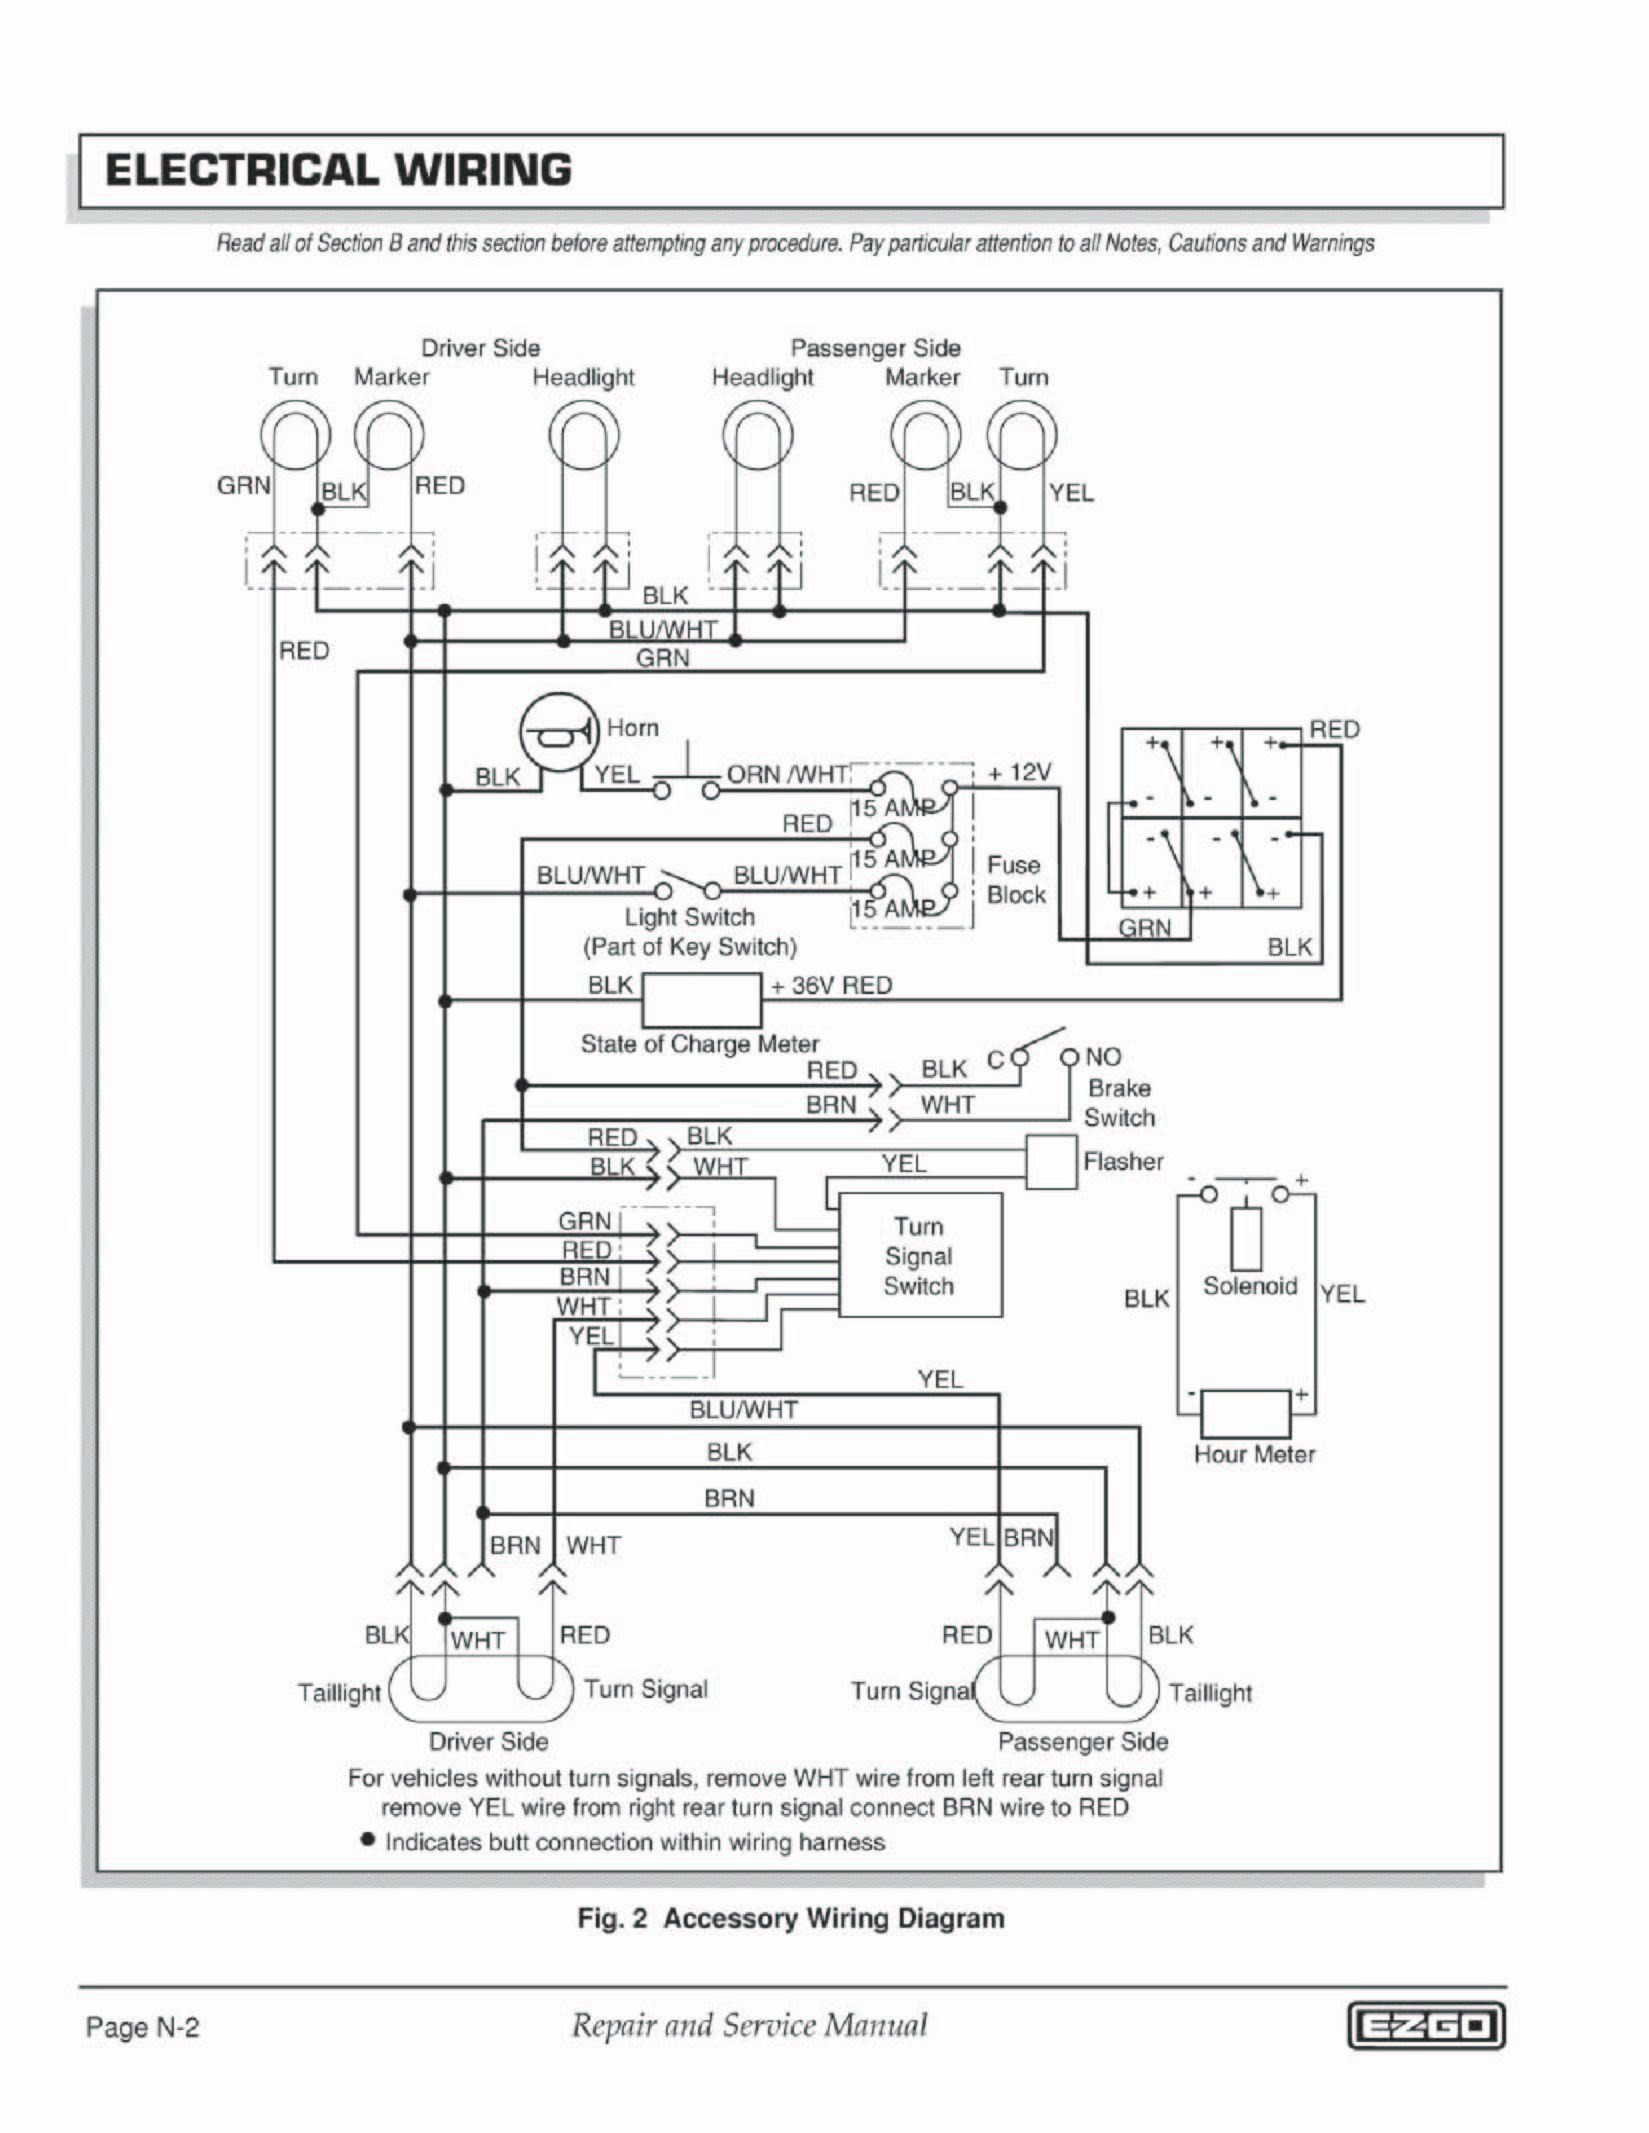 1994 Ezgo Gas Engine Wiring Diagram 1990 Ezgo Gas Wiring Diagram Wiring Diagram Schematic Of 1994 Ezgo Gas Engine Wiring Diagram 1995 Club Car Wiring Diagram